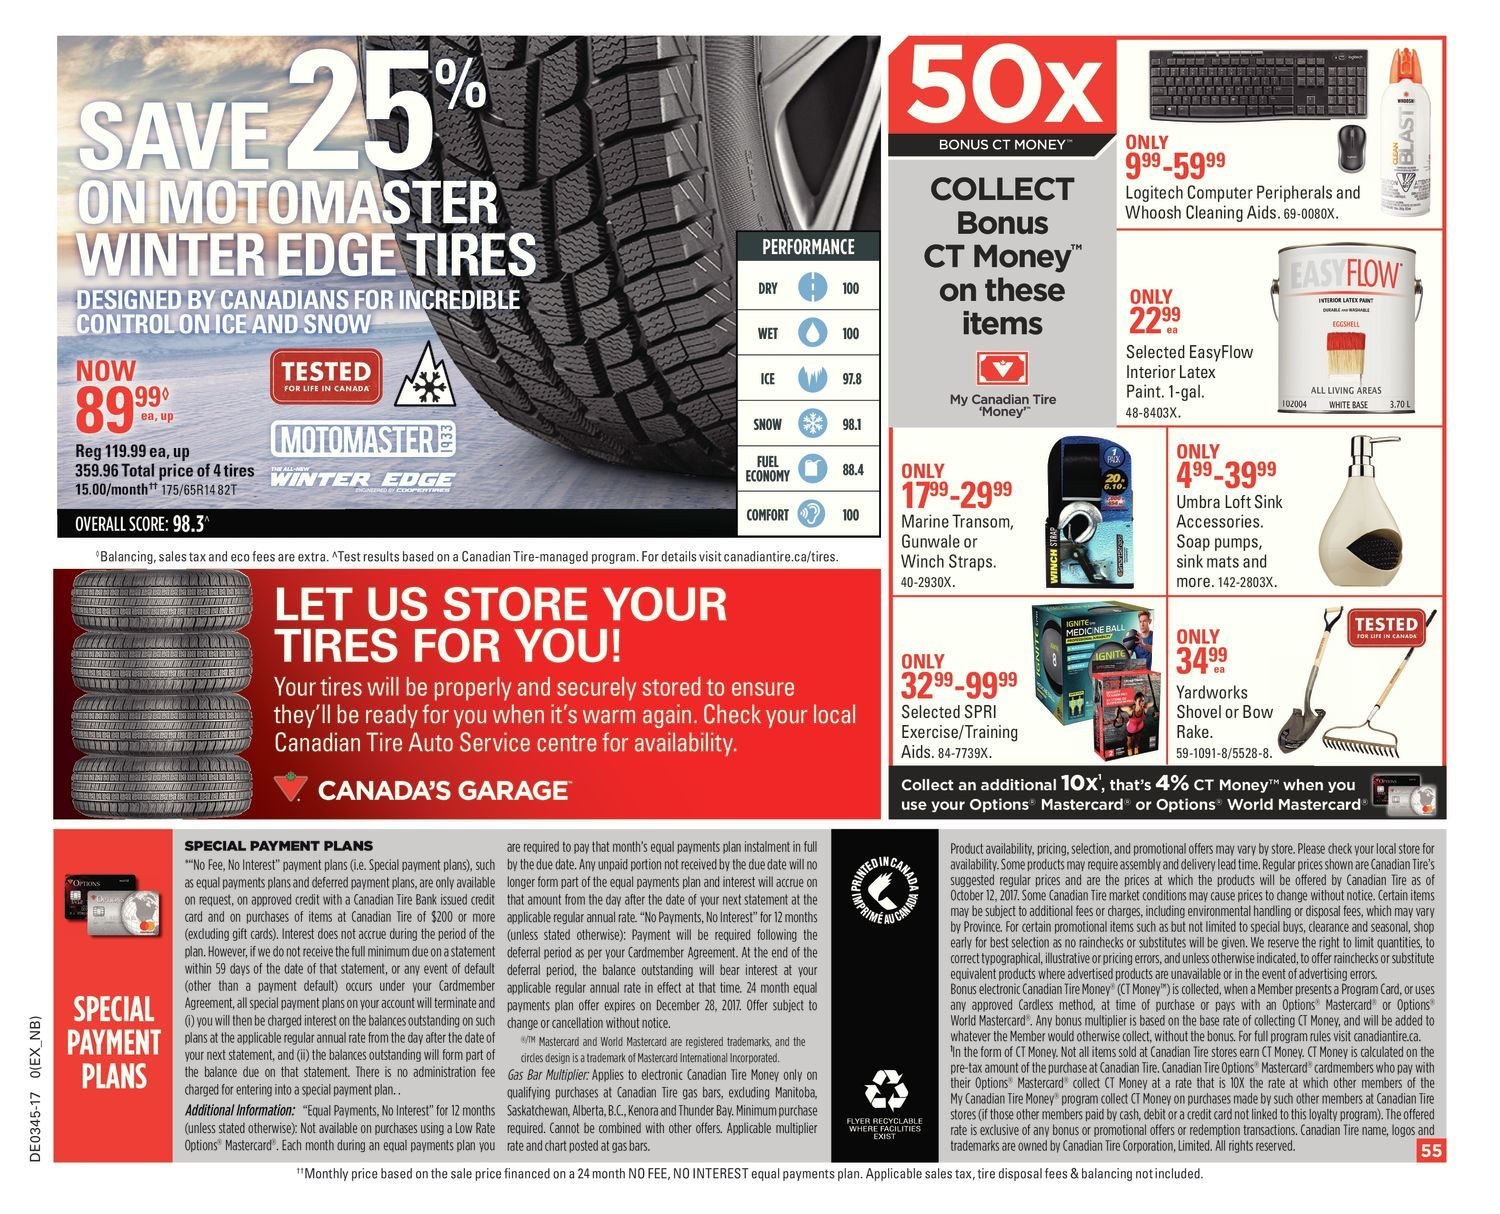 Canadian tire weekly flyer weekly bring on the cheer nov 3 canadian tire weekly flyer weekly bring on the cheer nov 3 9 redflagdeals keyboard keysfo Image collections